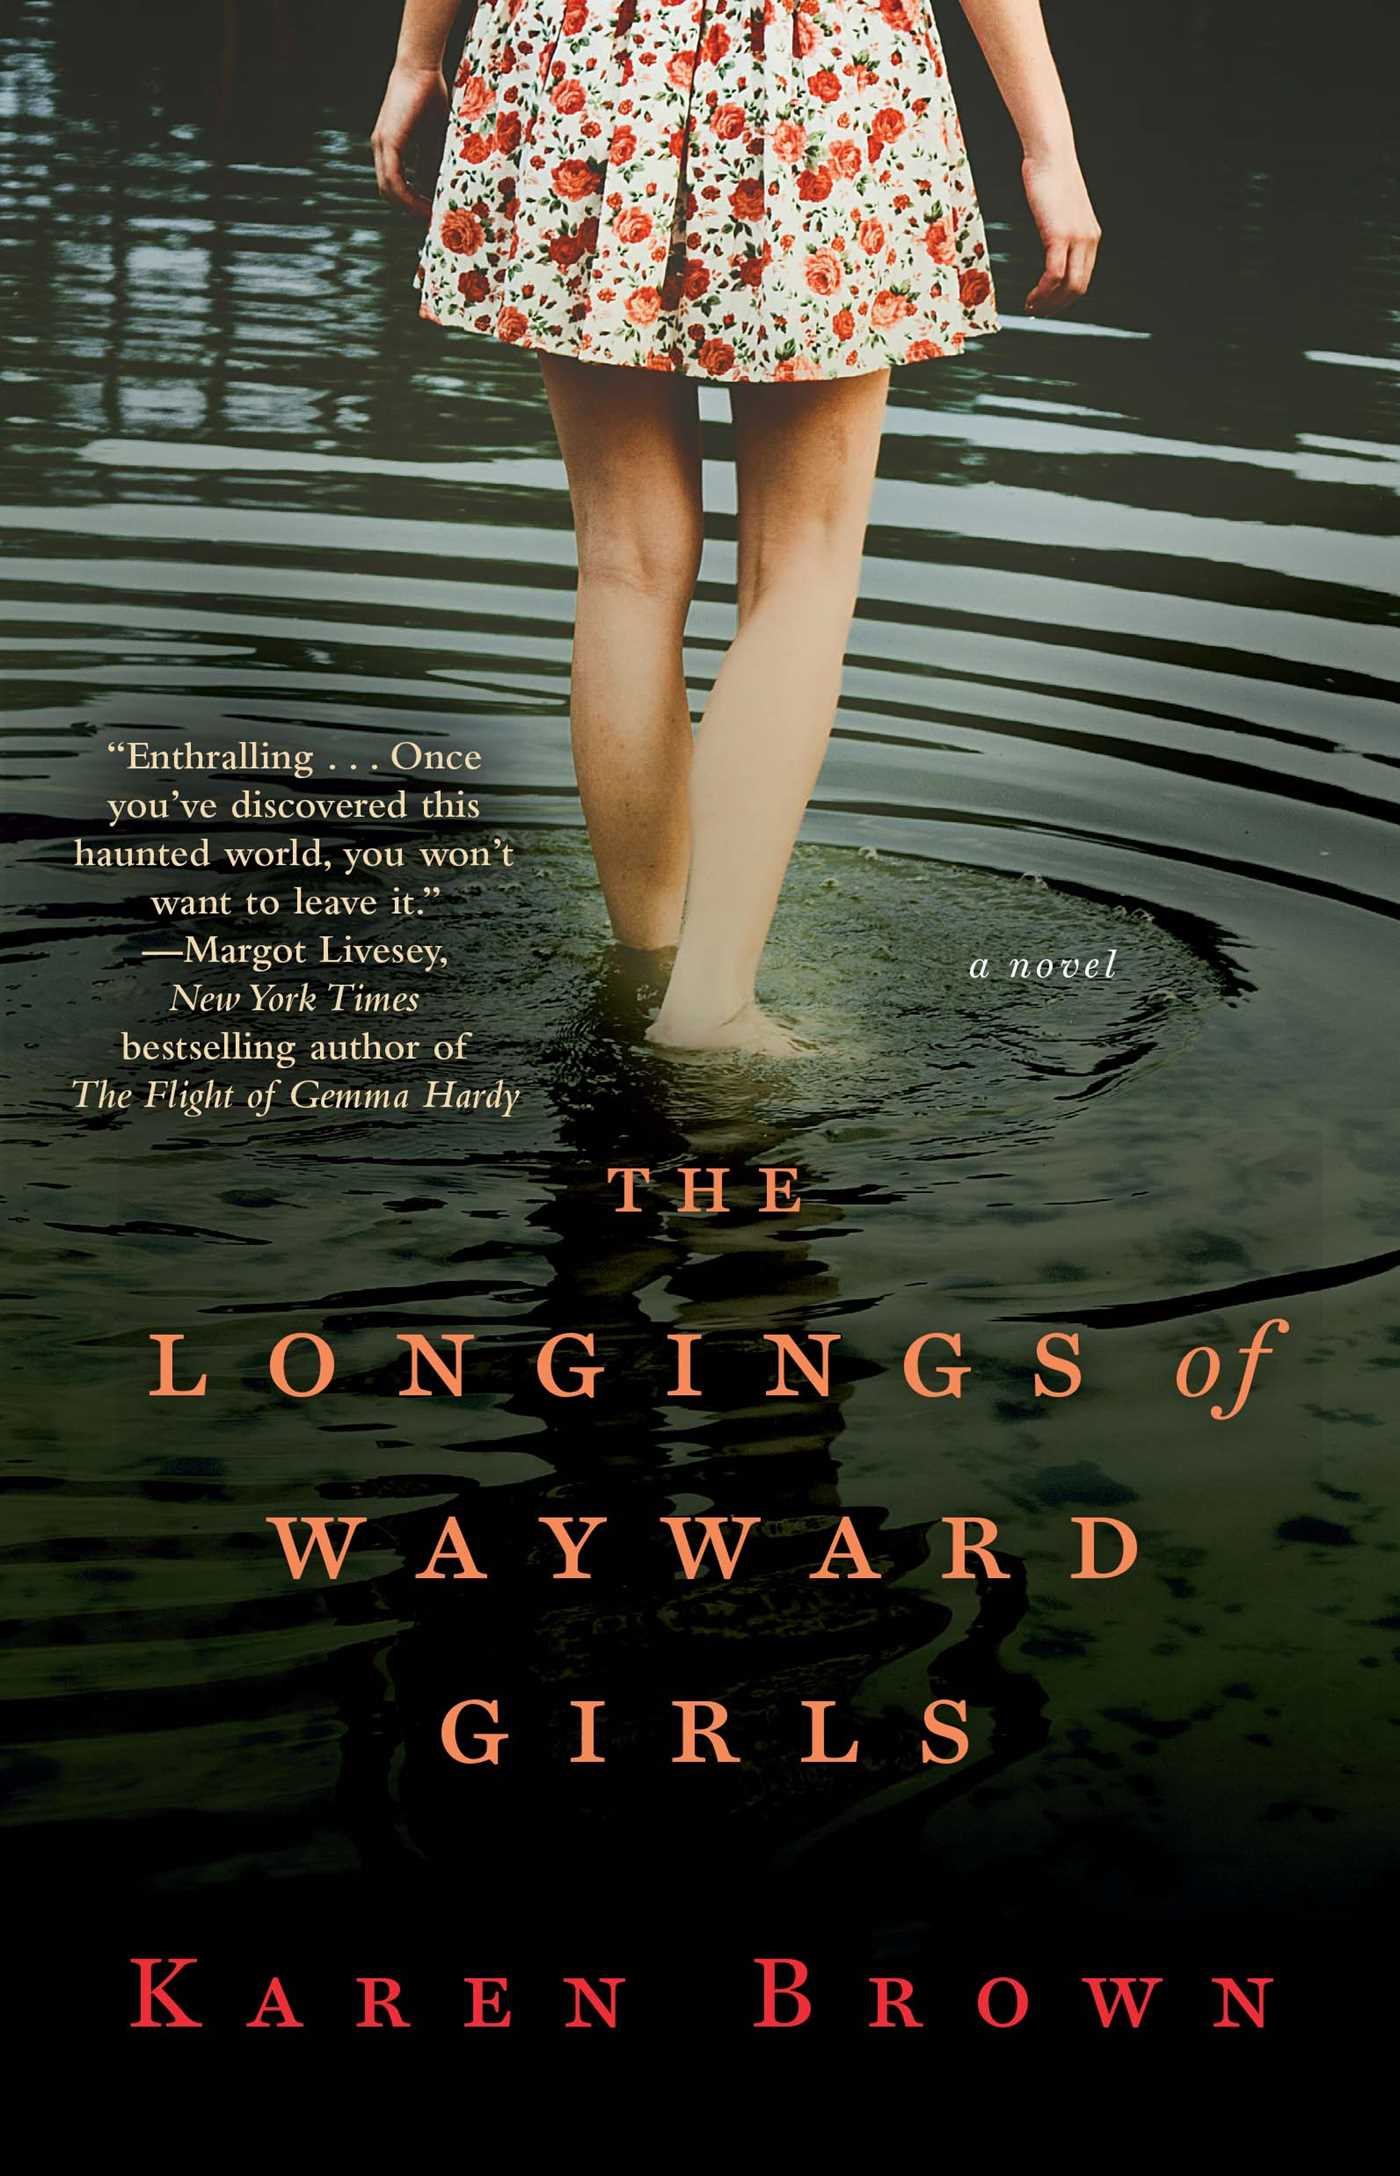 The-longings-of-wayward-girls-9781476724911_hr